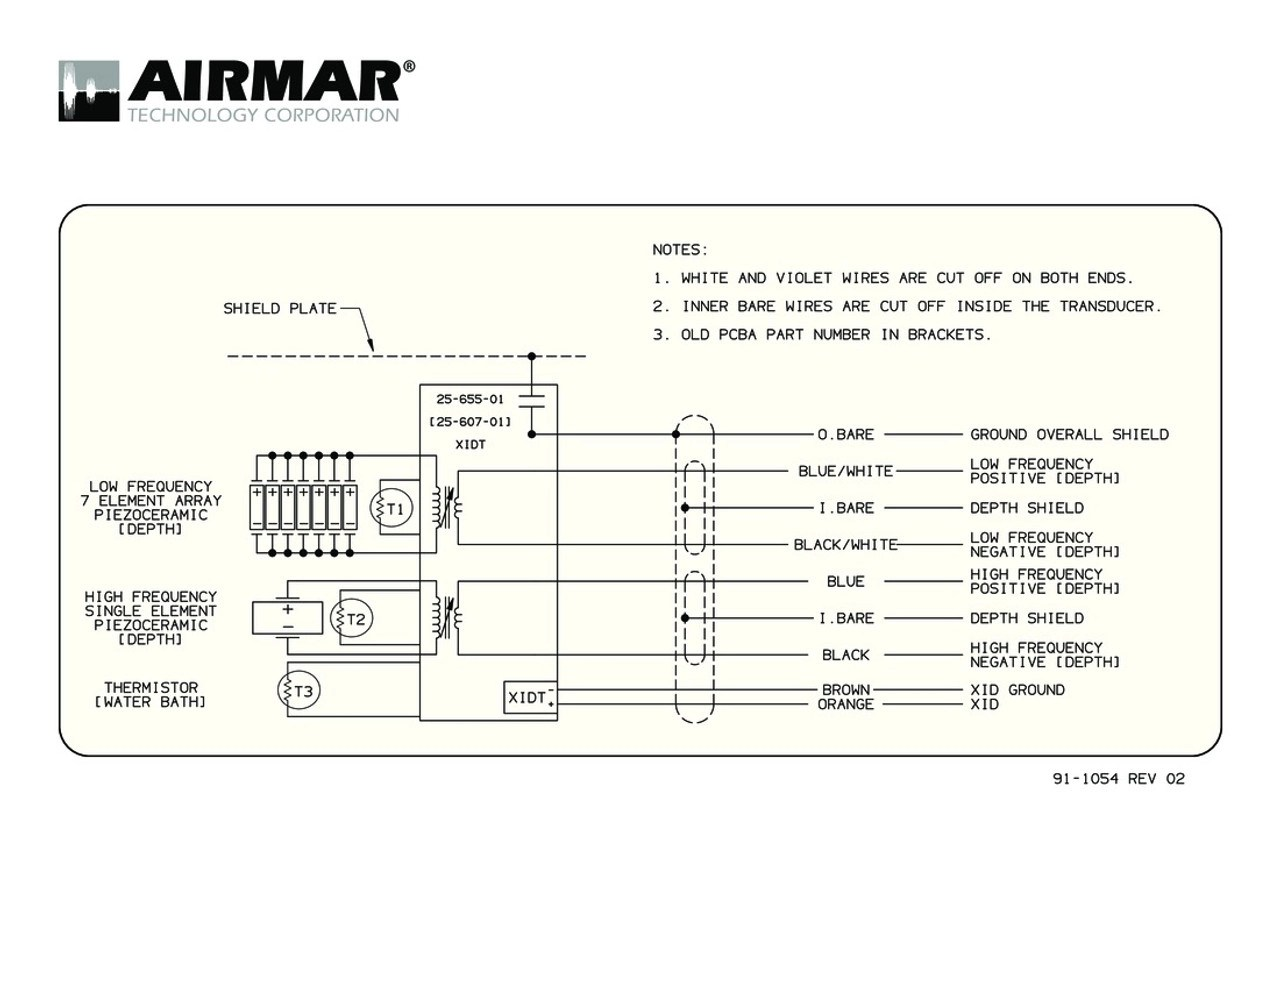 medium resolution of humminbird transducer wiring diagram wiring library m265c lh with bare wire cable airmar wiring diagram